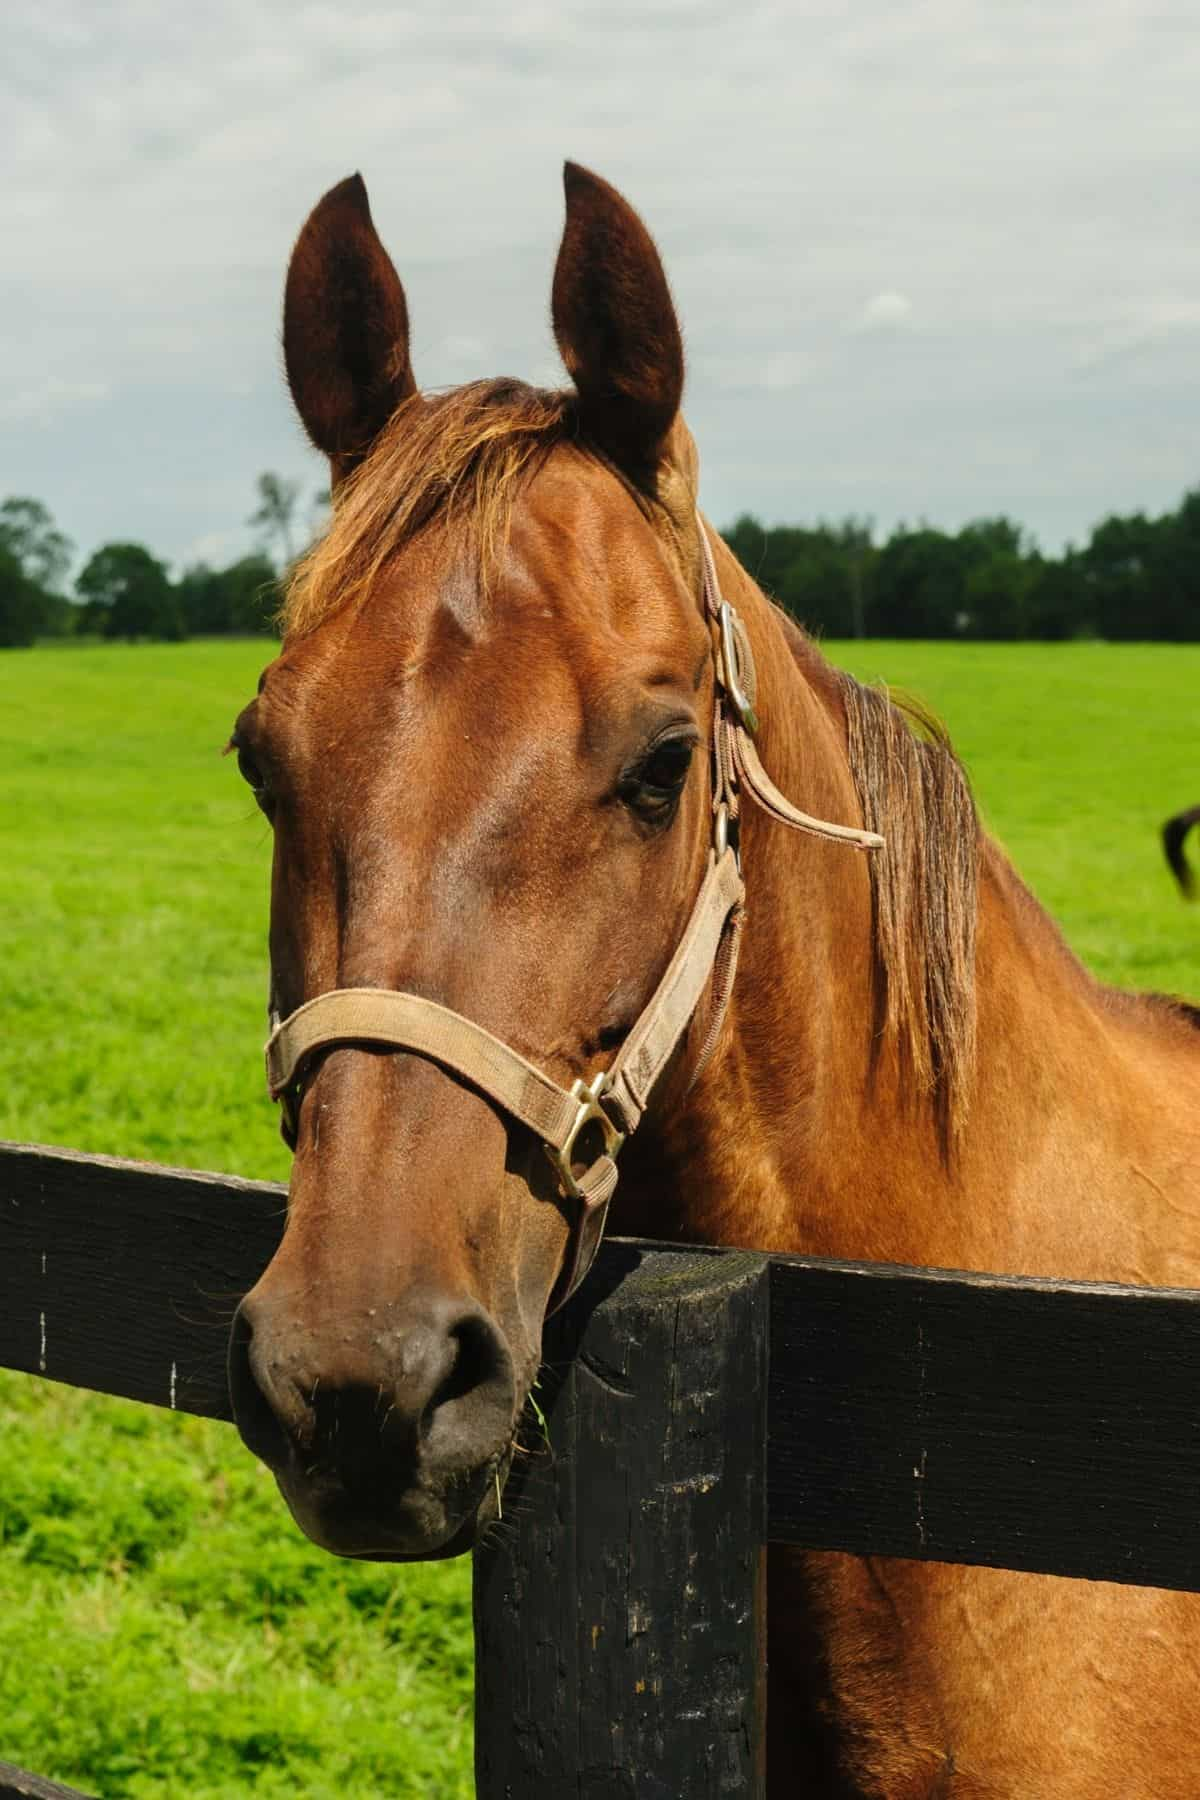 brown horse leaning over black fence